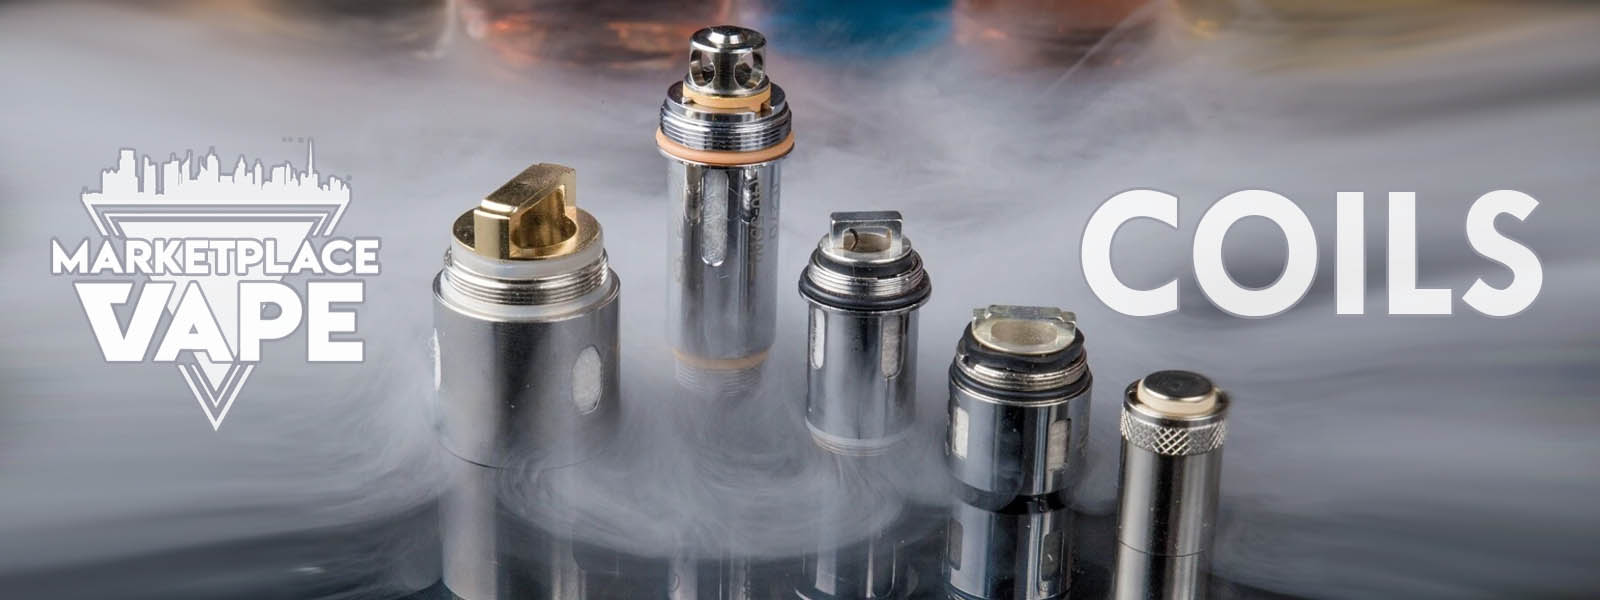 Available Coils at Marketplace Vape